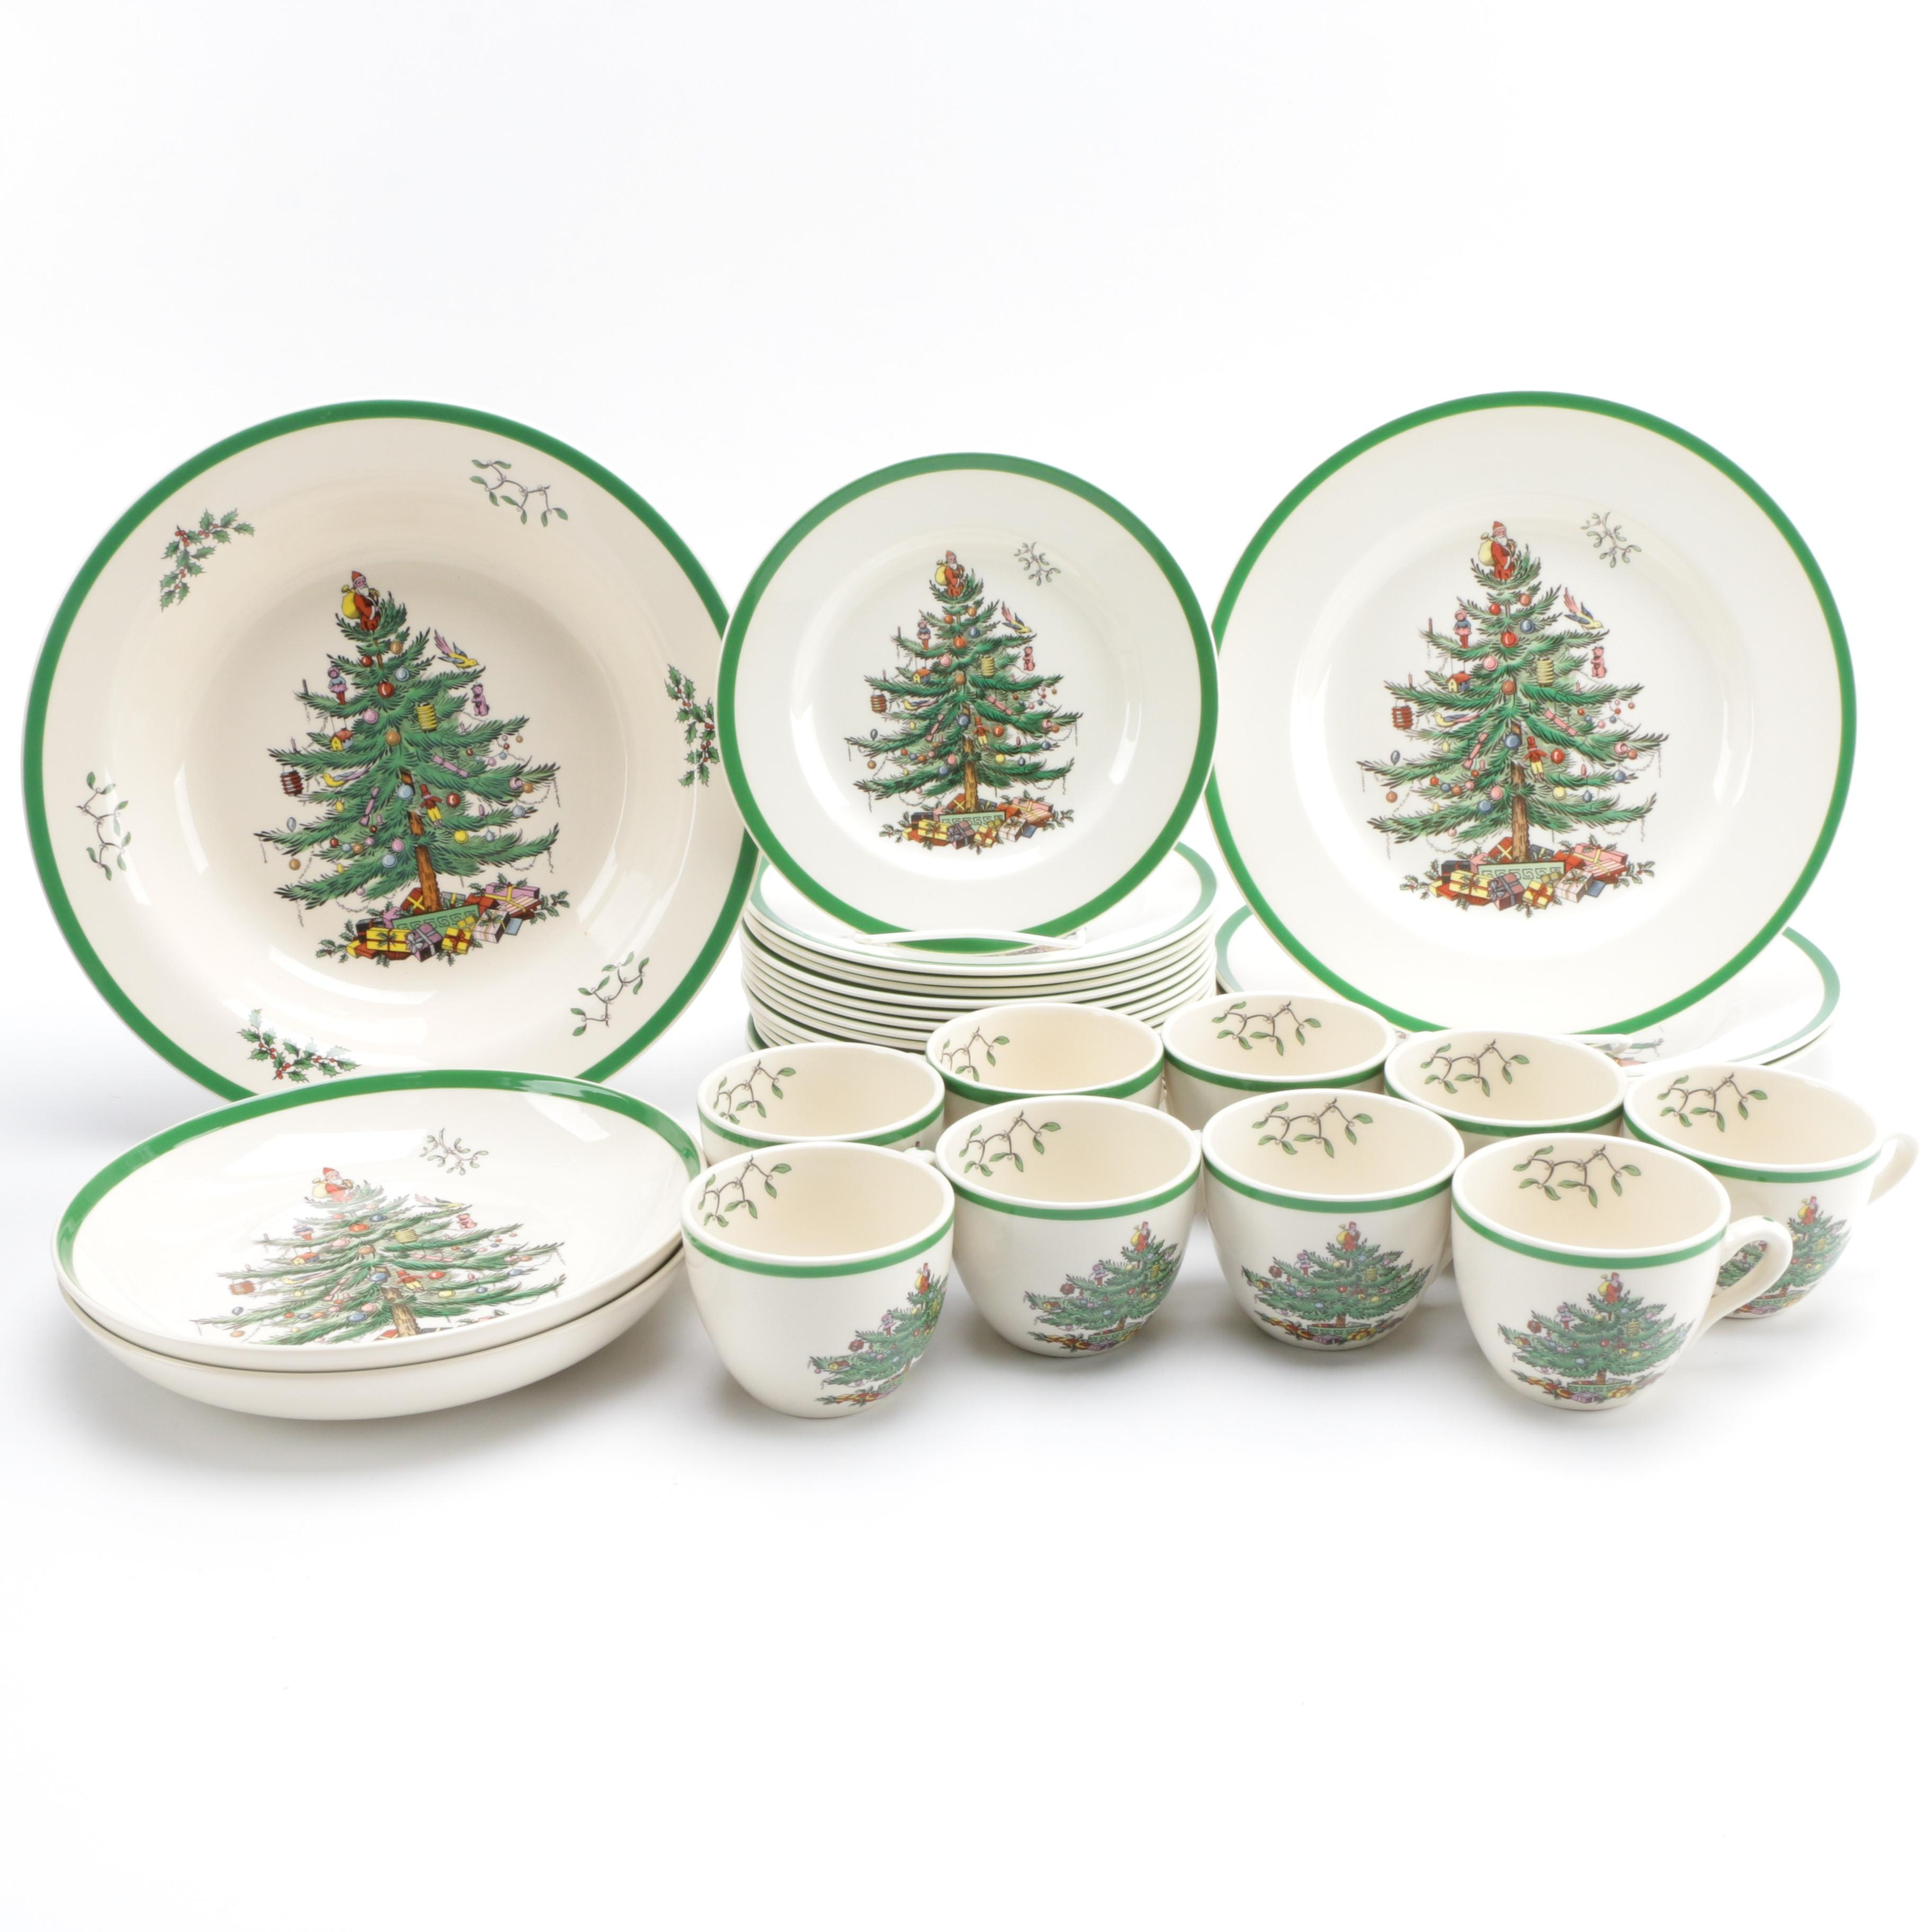 Collection of Spode Christmas Tree Tableware